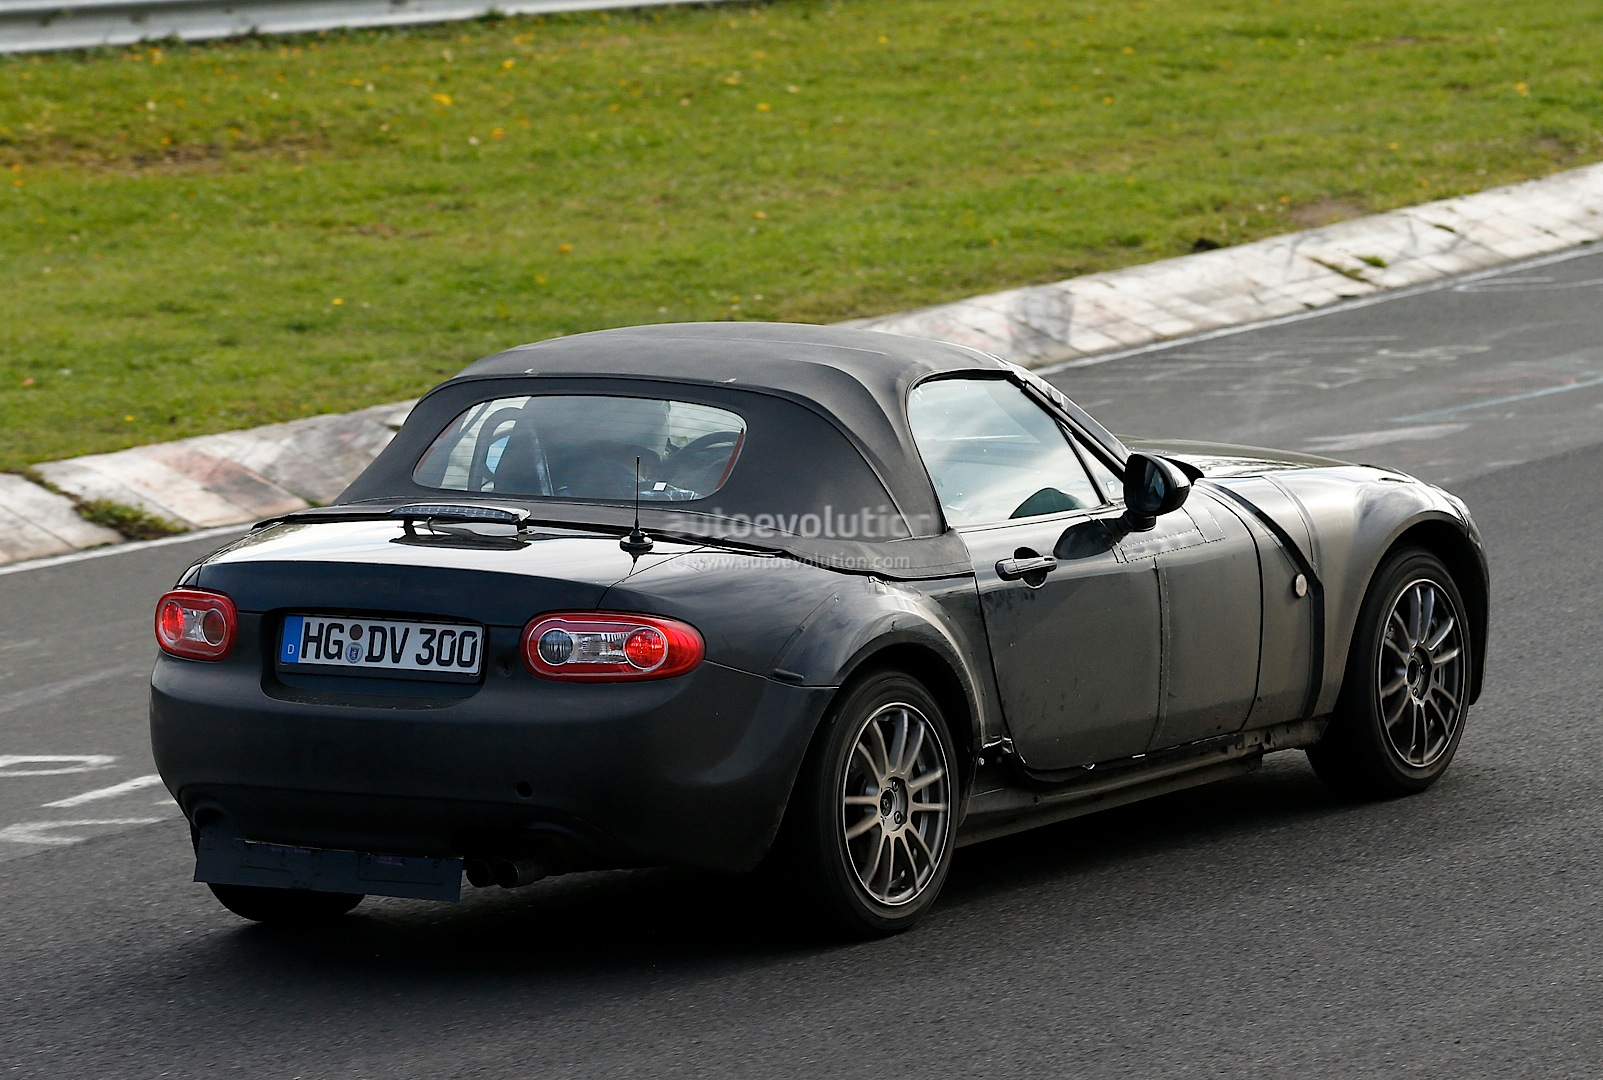 Spyshots New Mazda Mx 5 Alfa Spider Test Mule Spotted